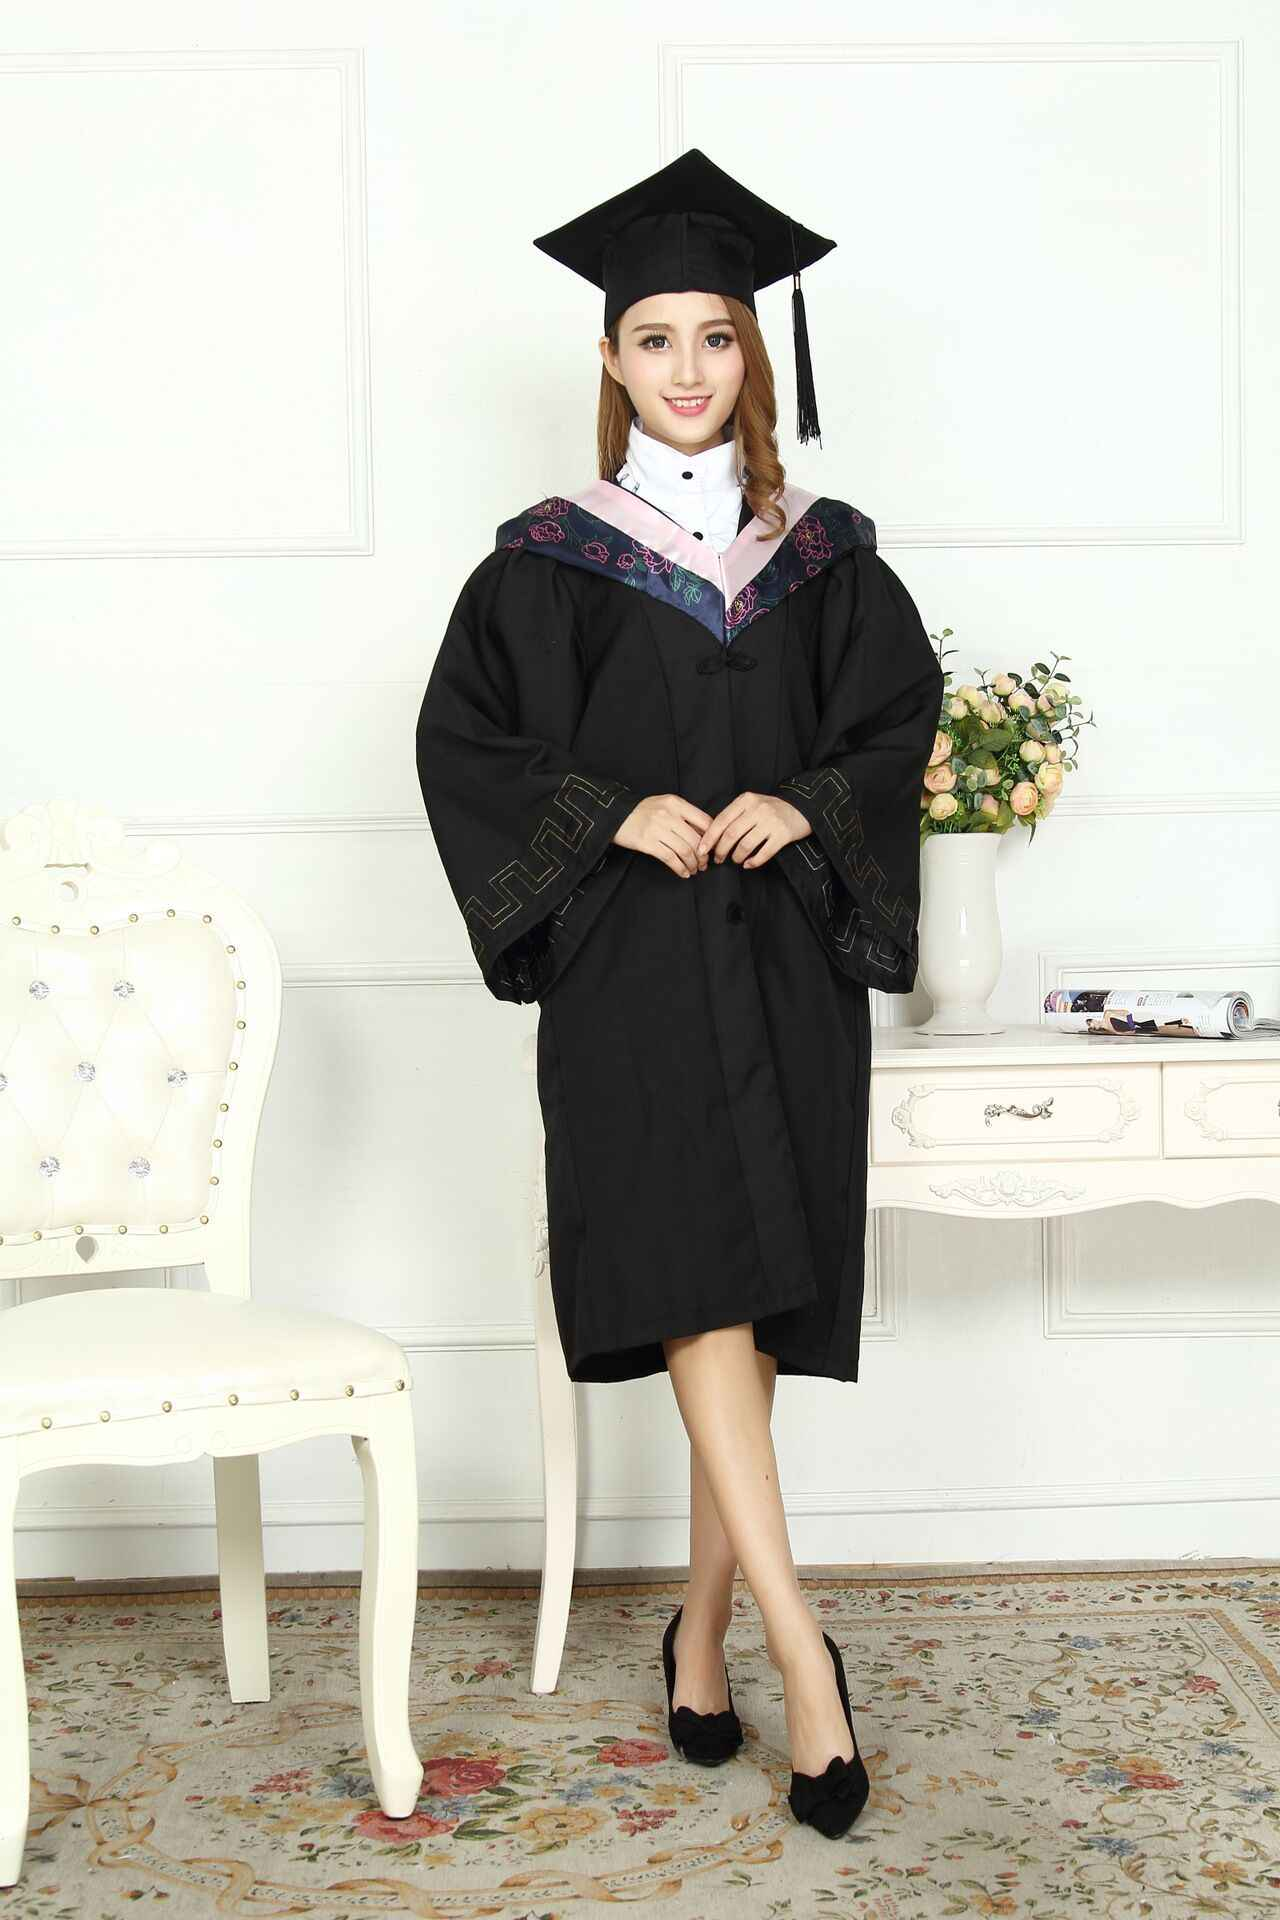 2893723d7 ... Adult Performance Academic Dress Gown Women University Graduation  Clothing Robe +Hat Master s Degree Gown Bachelor ...